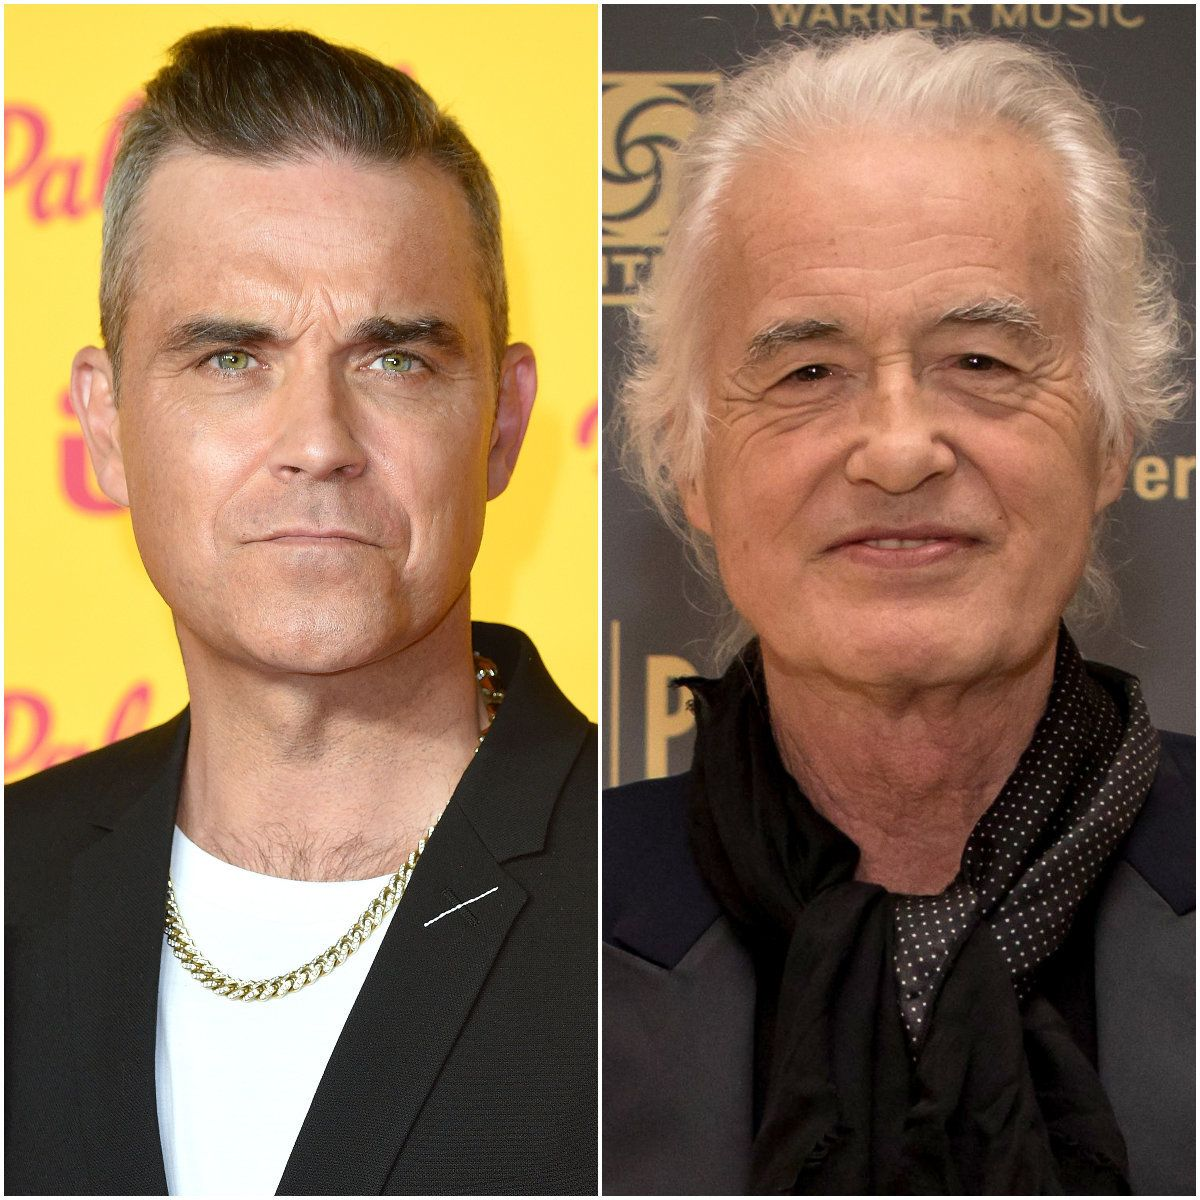 Robbie Williams Accused Of Taunting Neighbour Jimmy Page With Black Sabbath Music, Amid Property